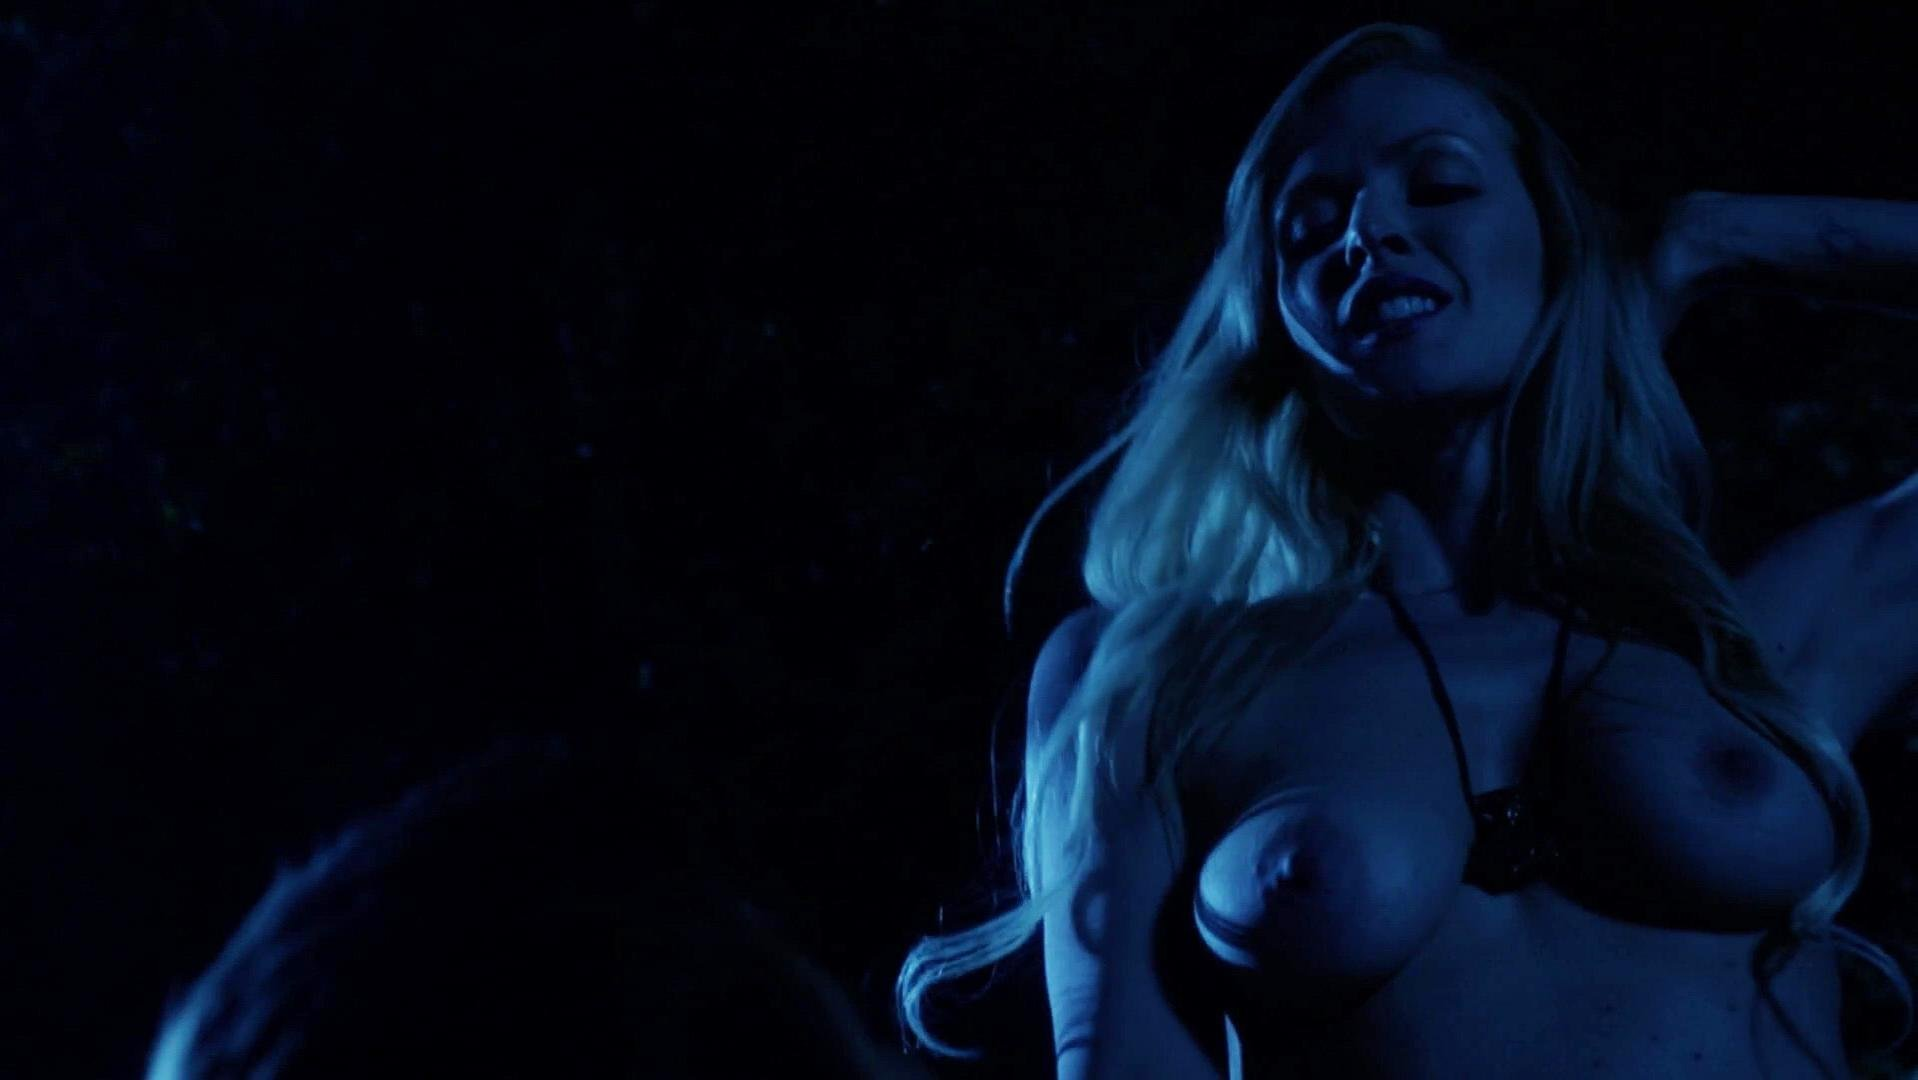 Hannah Cowley nude, Jessica Morris nude - Haunting of the Innocent (2014)